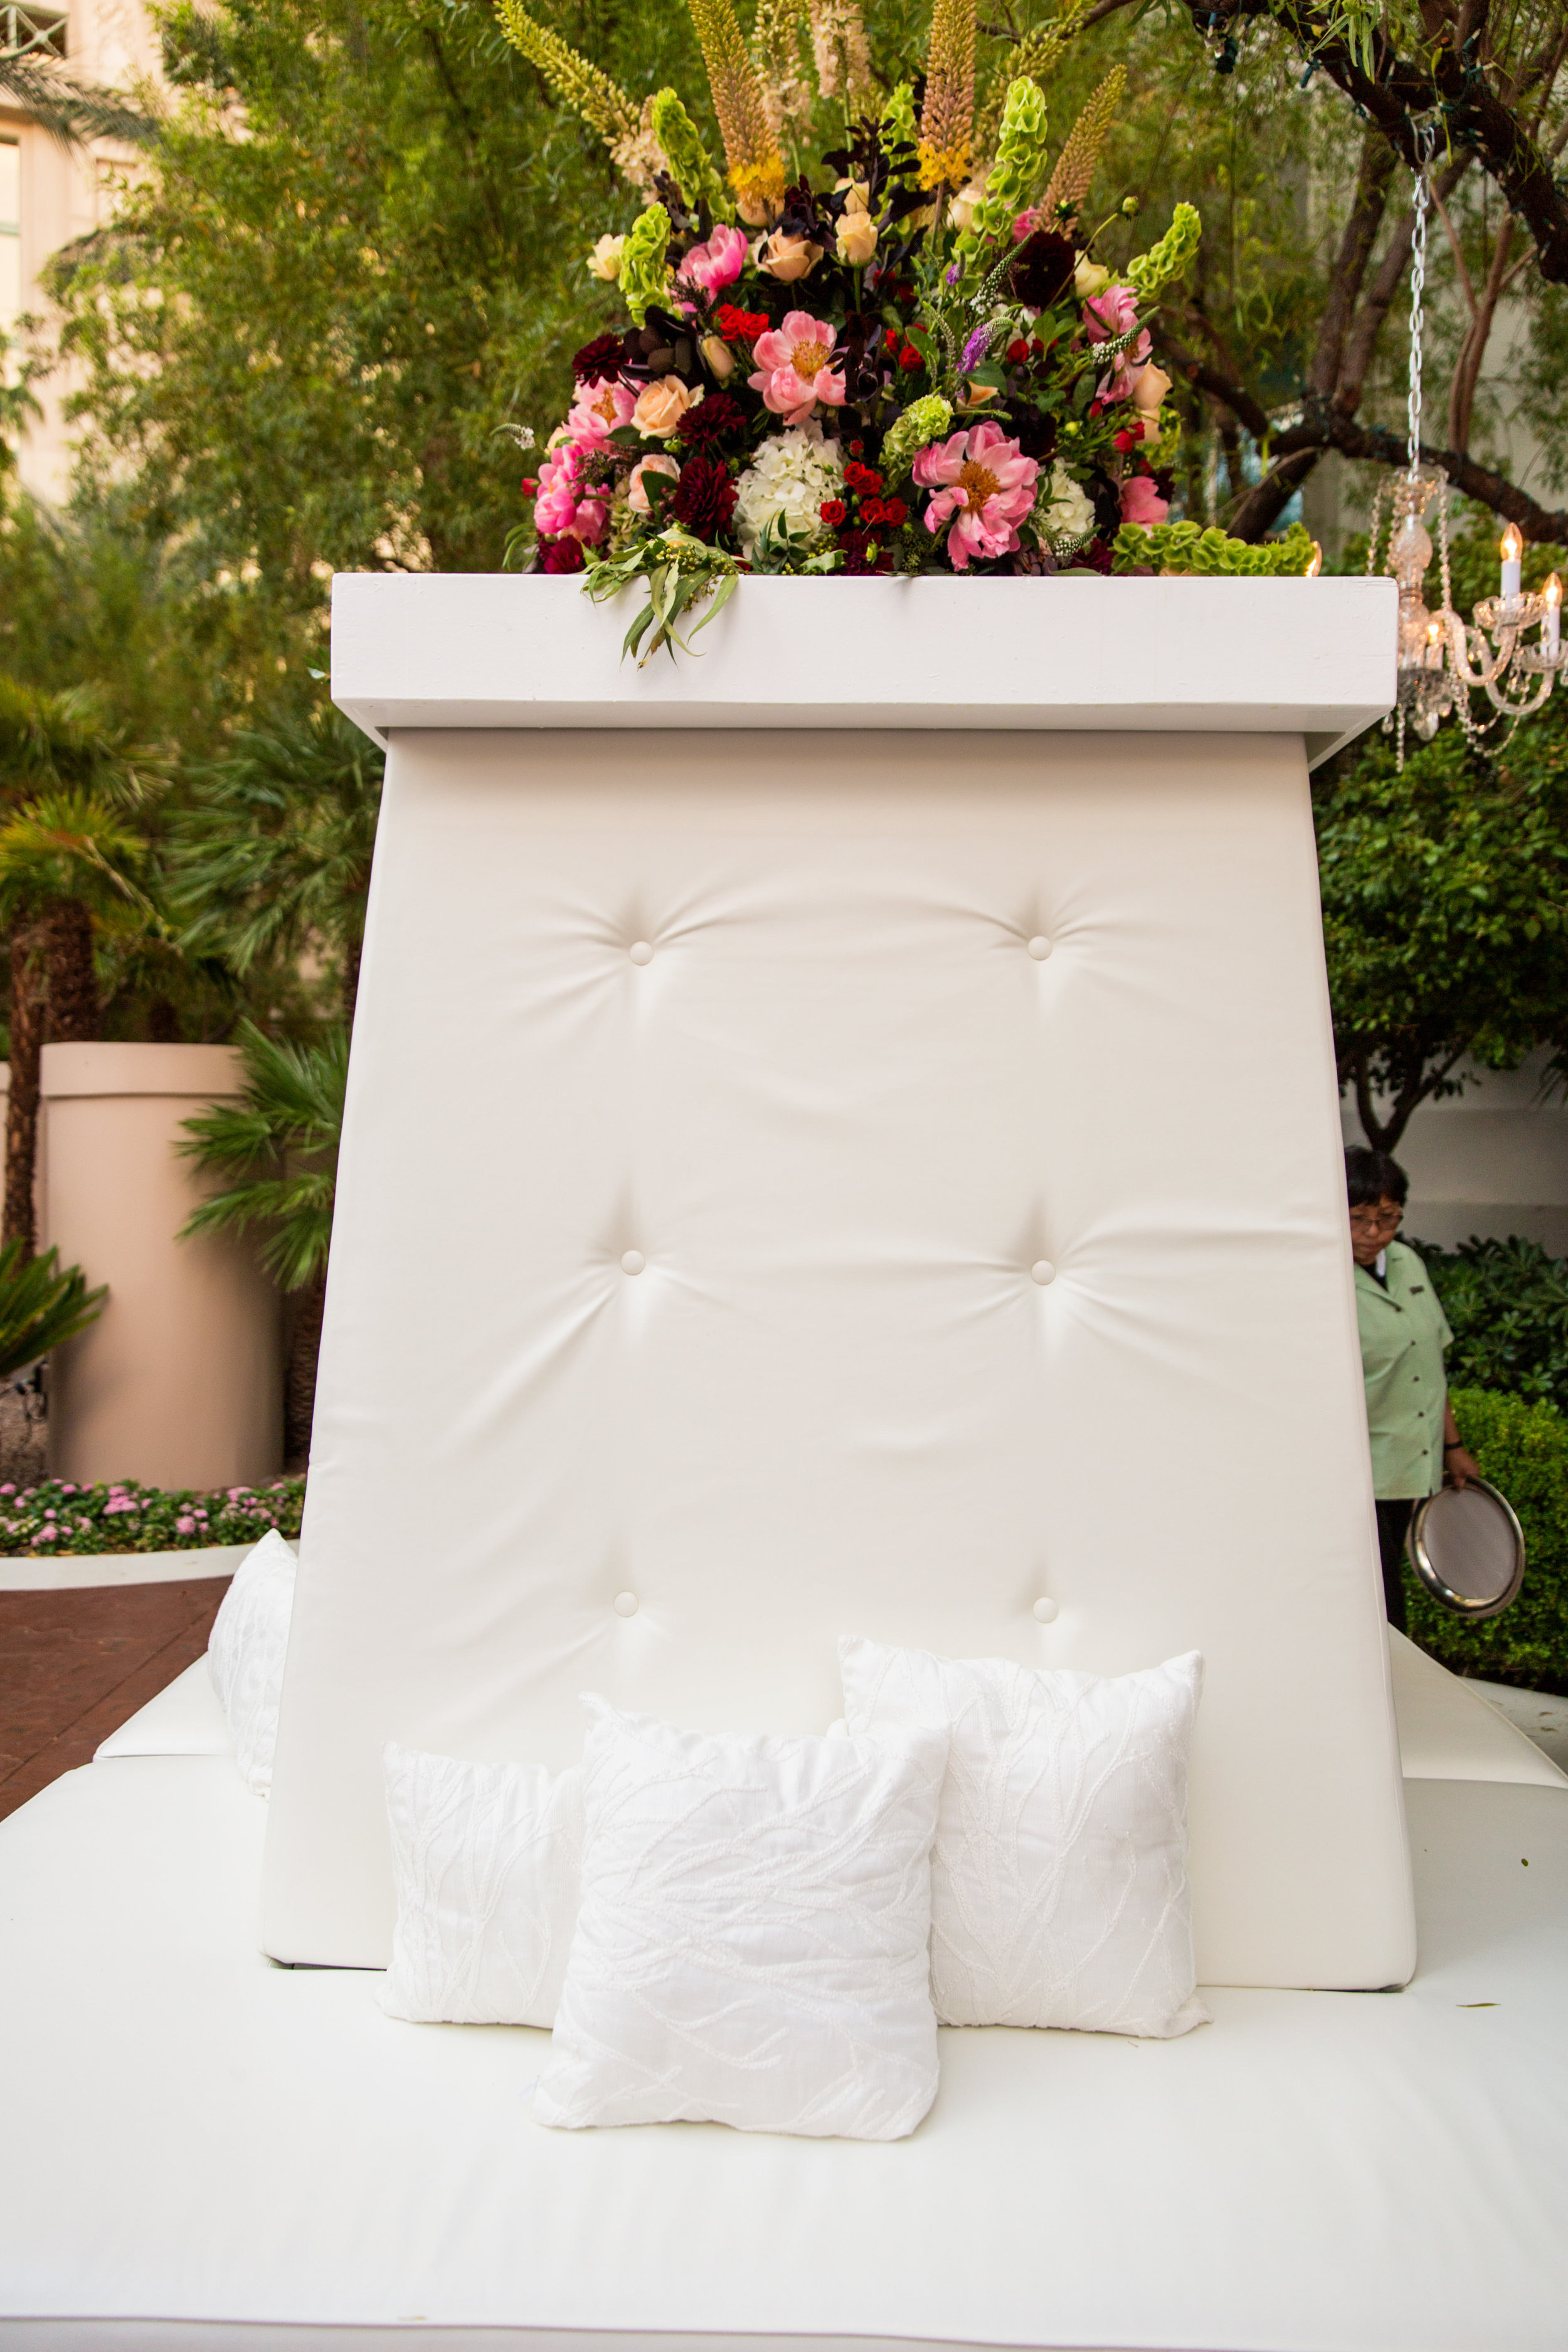 White tufted lounge furniture with red and fuchsia flowers.Wedding Planning by  Andrea Eppolito Events  · Photography by  Shandro Photo   · Wedding Venue  Four Seasons Las Vegas  · Floral and Decor by  Destination by Design  · Chandeliers and Lighting by  LED Unplugged